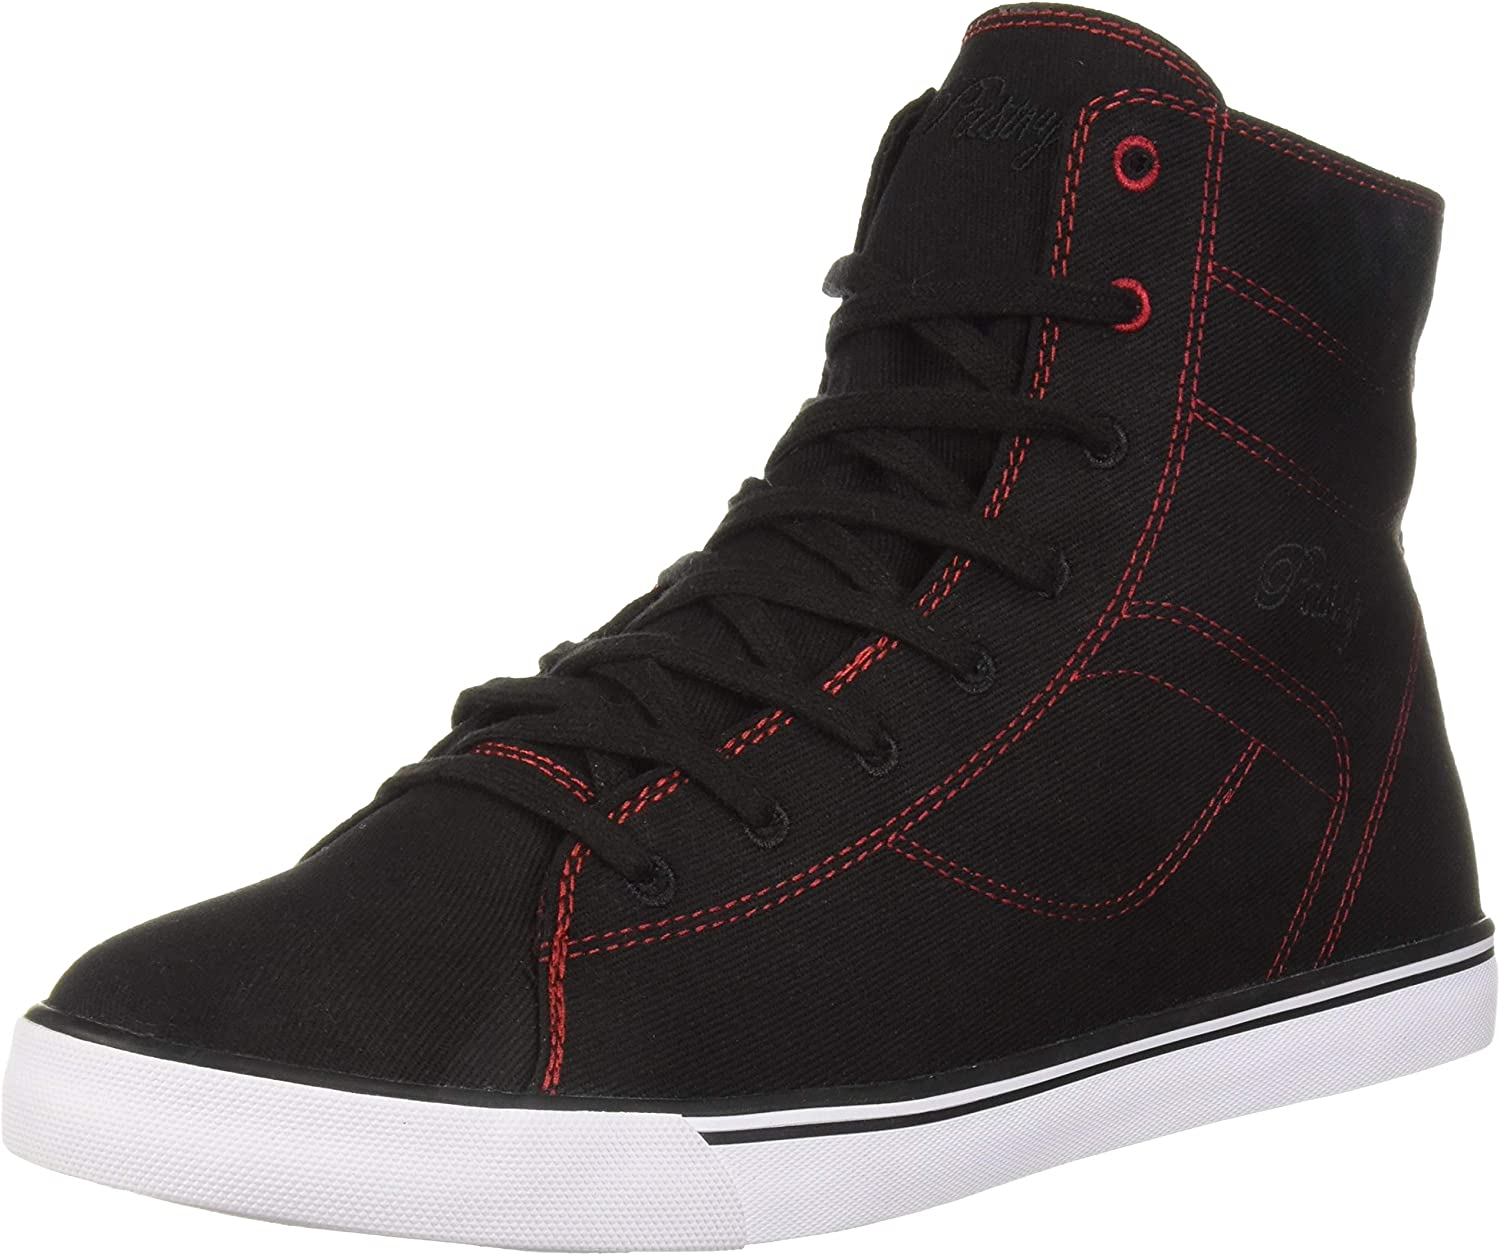 Pastry Unisex High-Top Fashion Sneakers - Cassatta Style